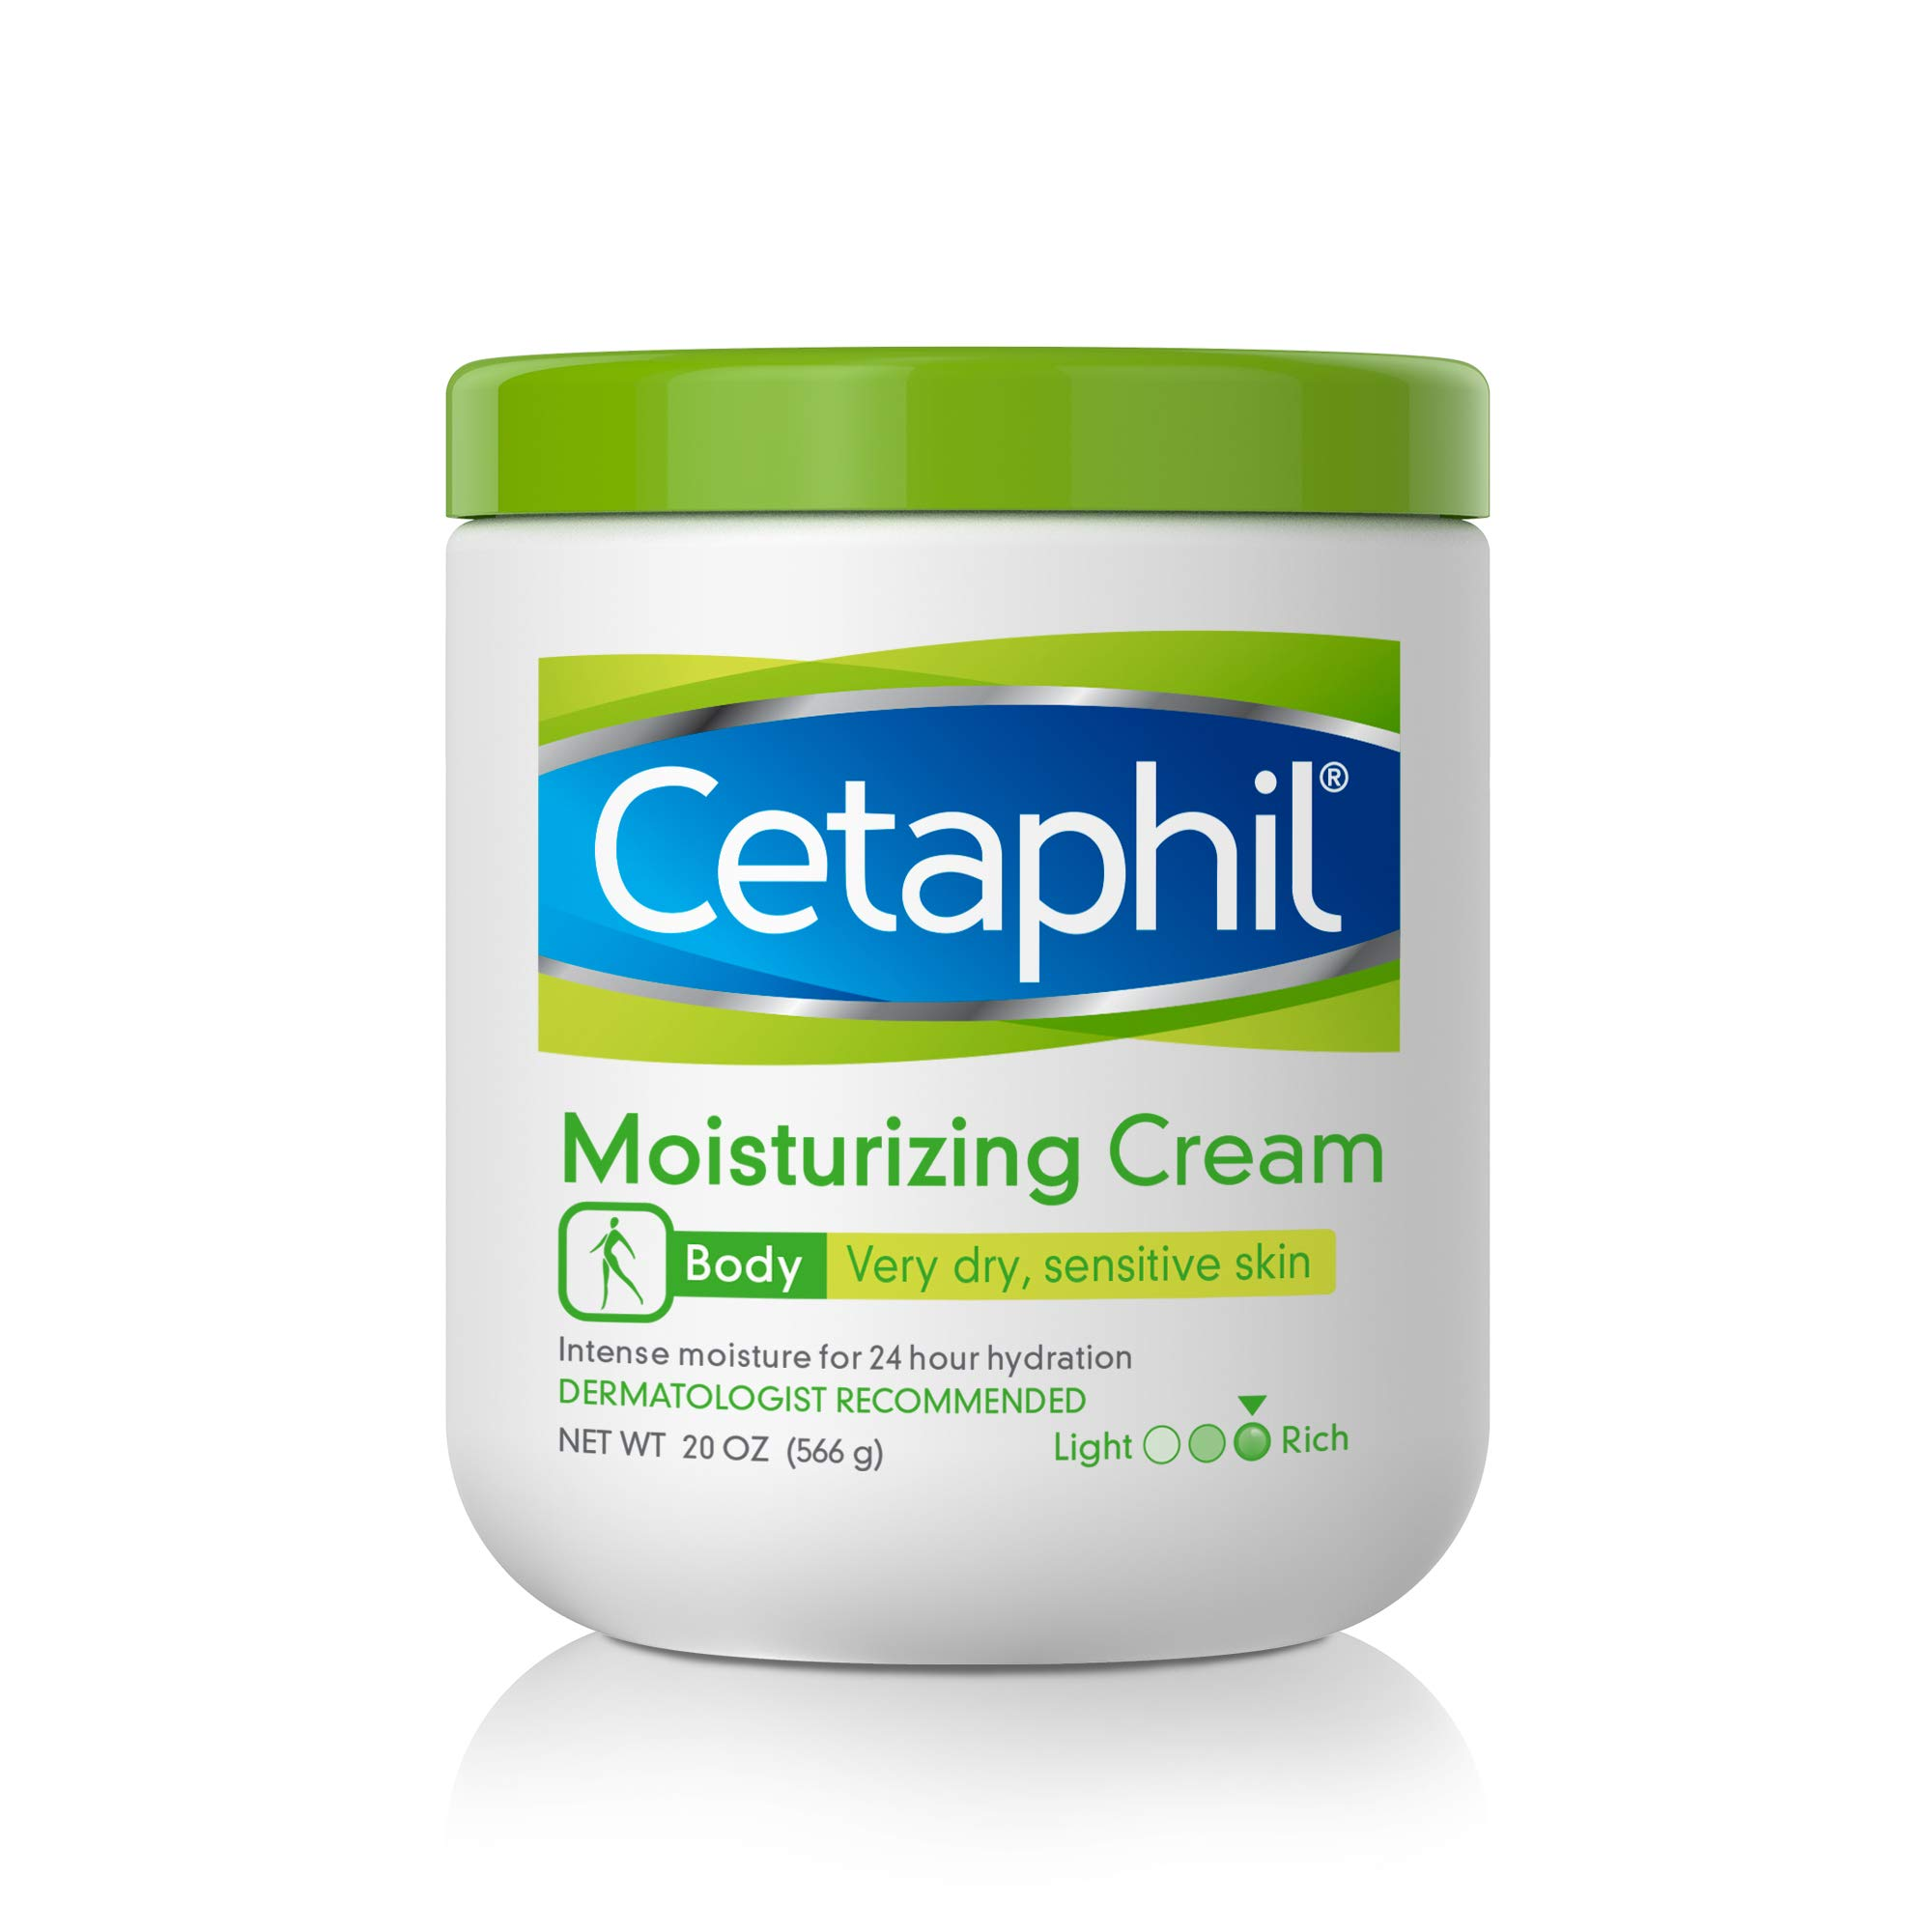 CETAPHIL Moisturizing Cream   20 oz   Moisturizer For Dry To Very Dry, Sensitive Skin   Completely Restores Skin Barrier In 1 Week   Fragrance Free   Non-Greasy   Dermatologist Recommended Brand